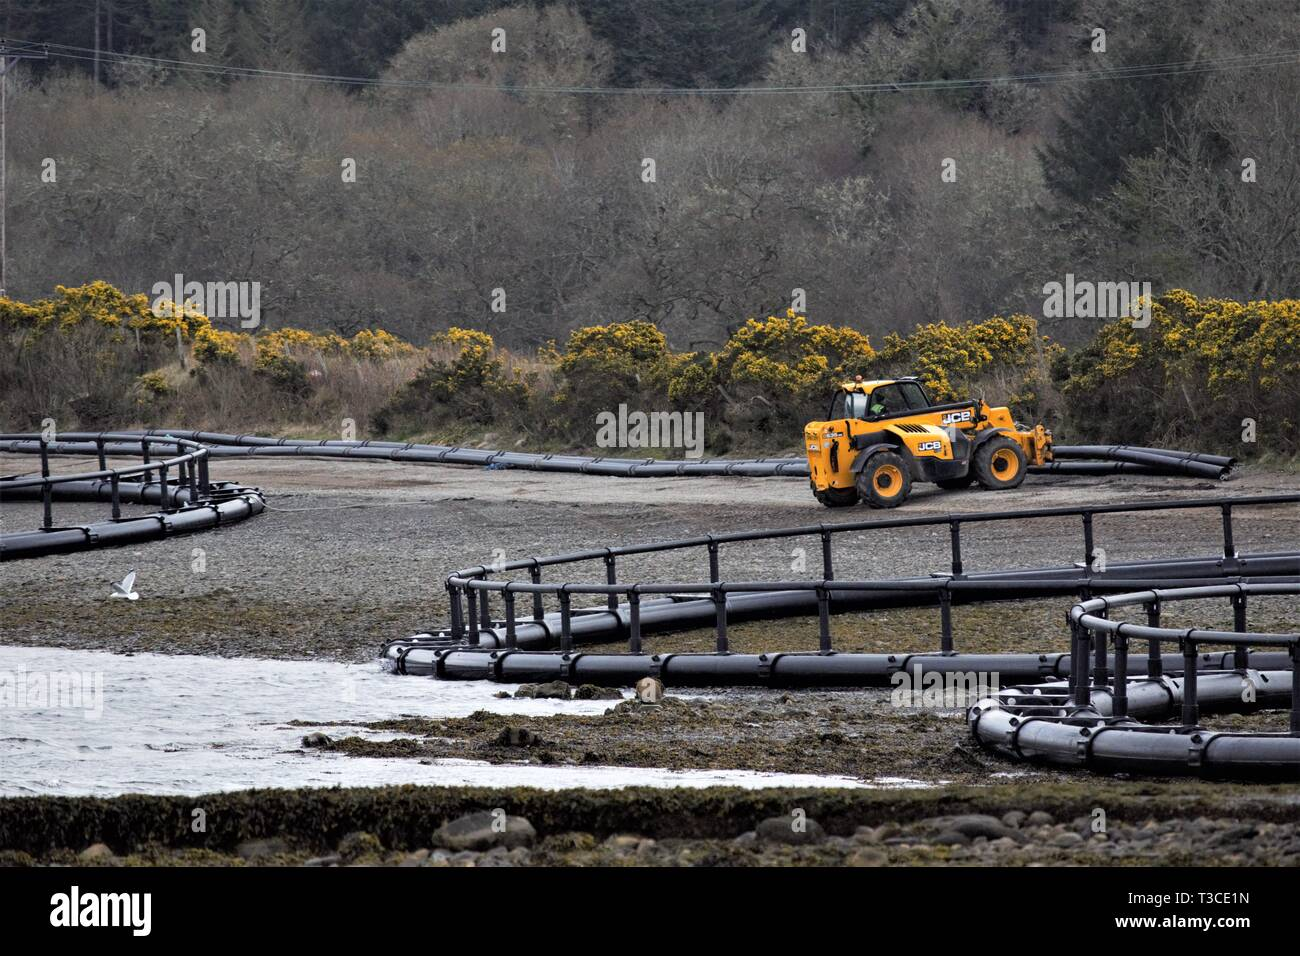 Construction of Fusion Marine, HDPE, floating, salmon fish pen cages on the shores of Loch Creran. Golden blooms of whins in the background. - Stock Image